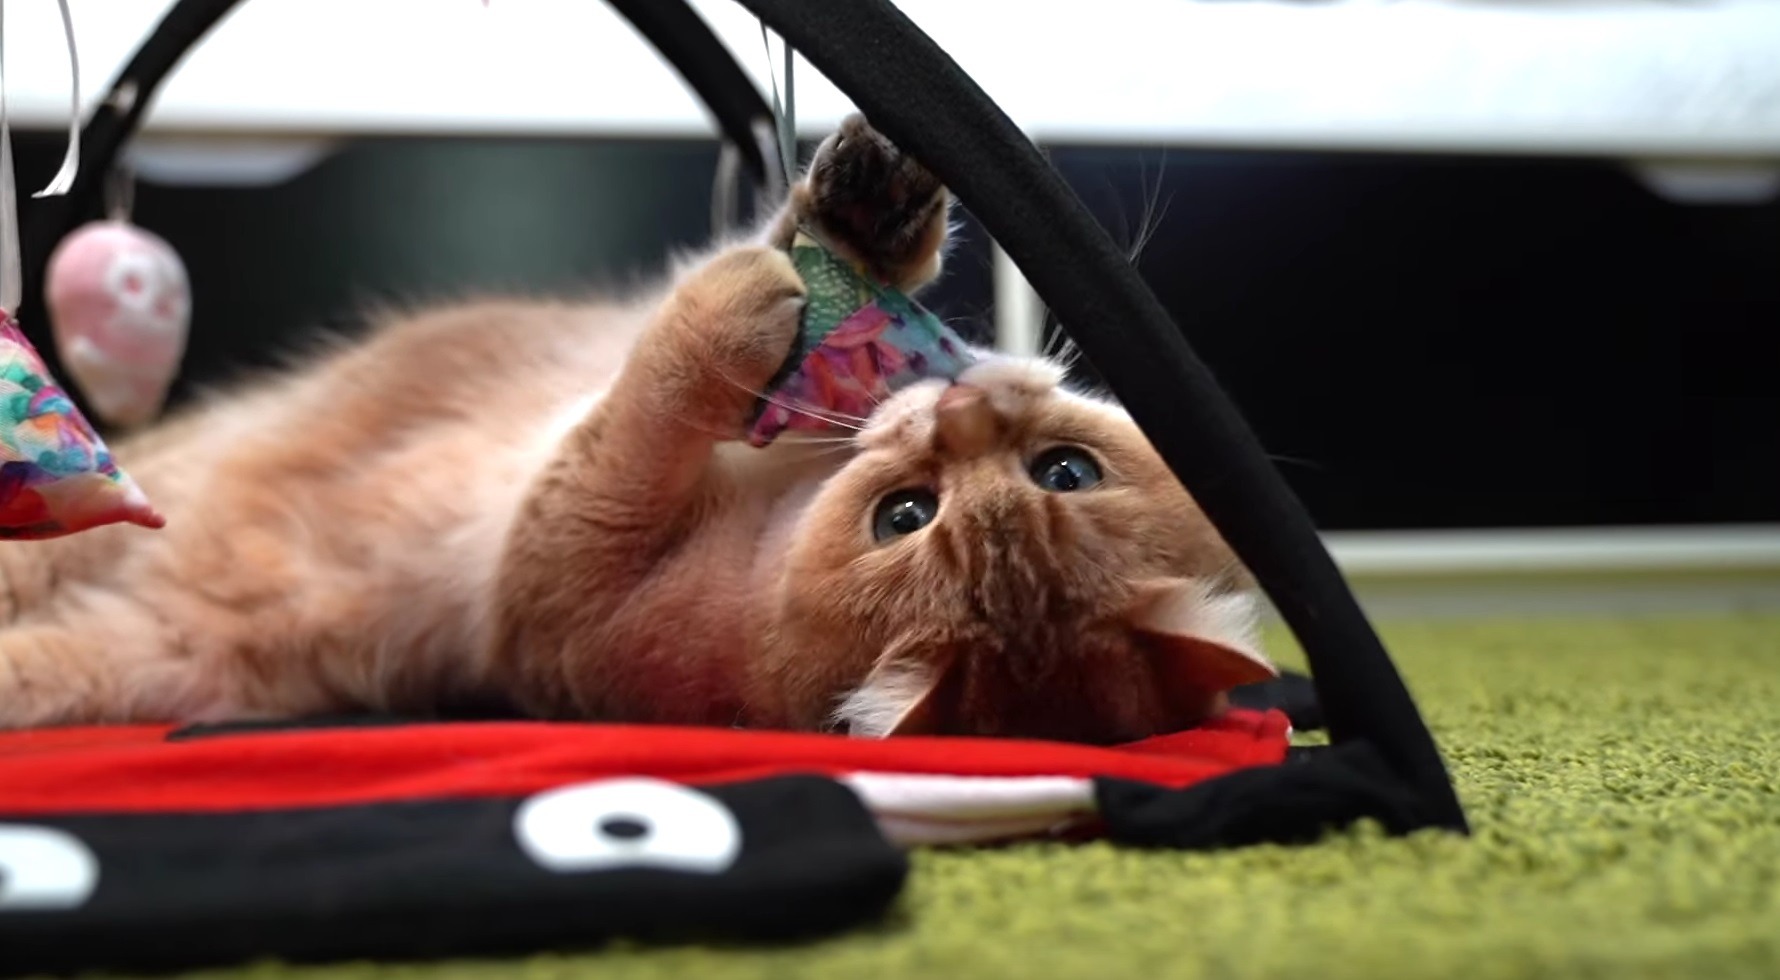 Hosico Playful Moment